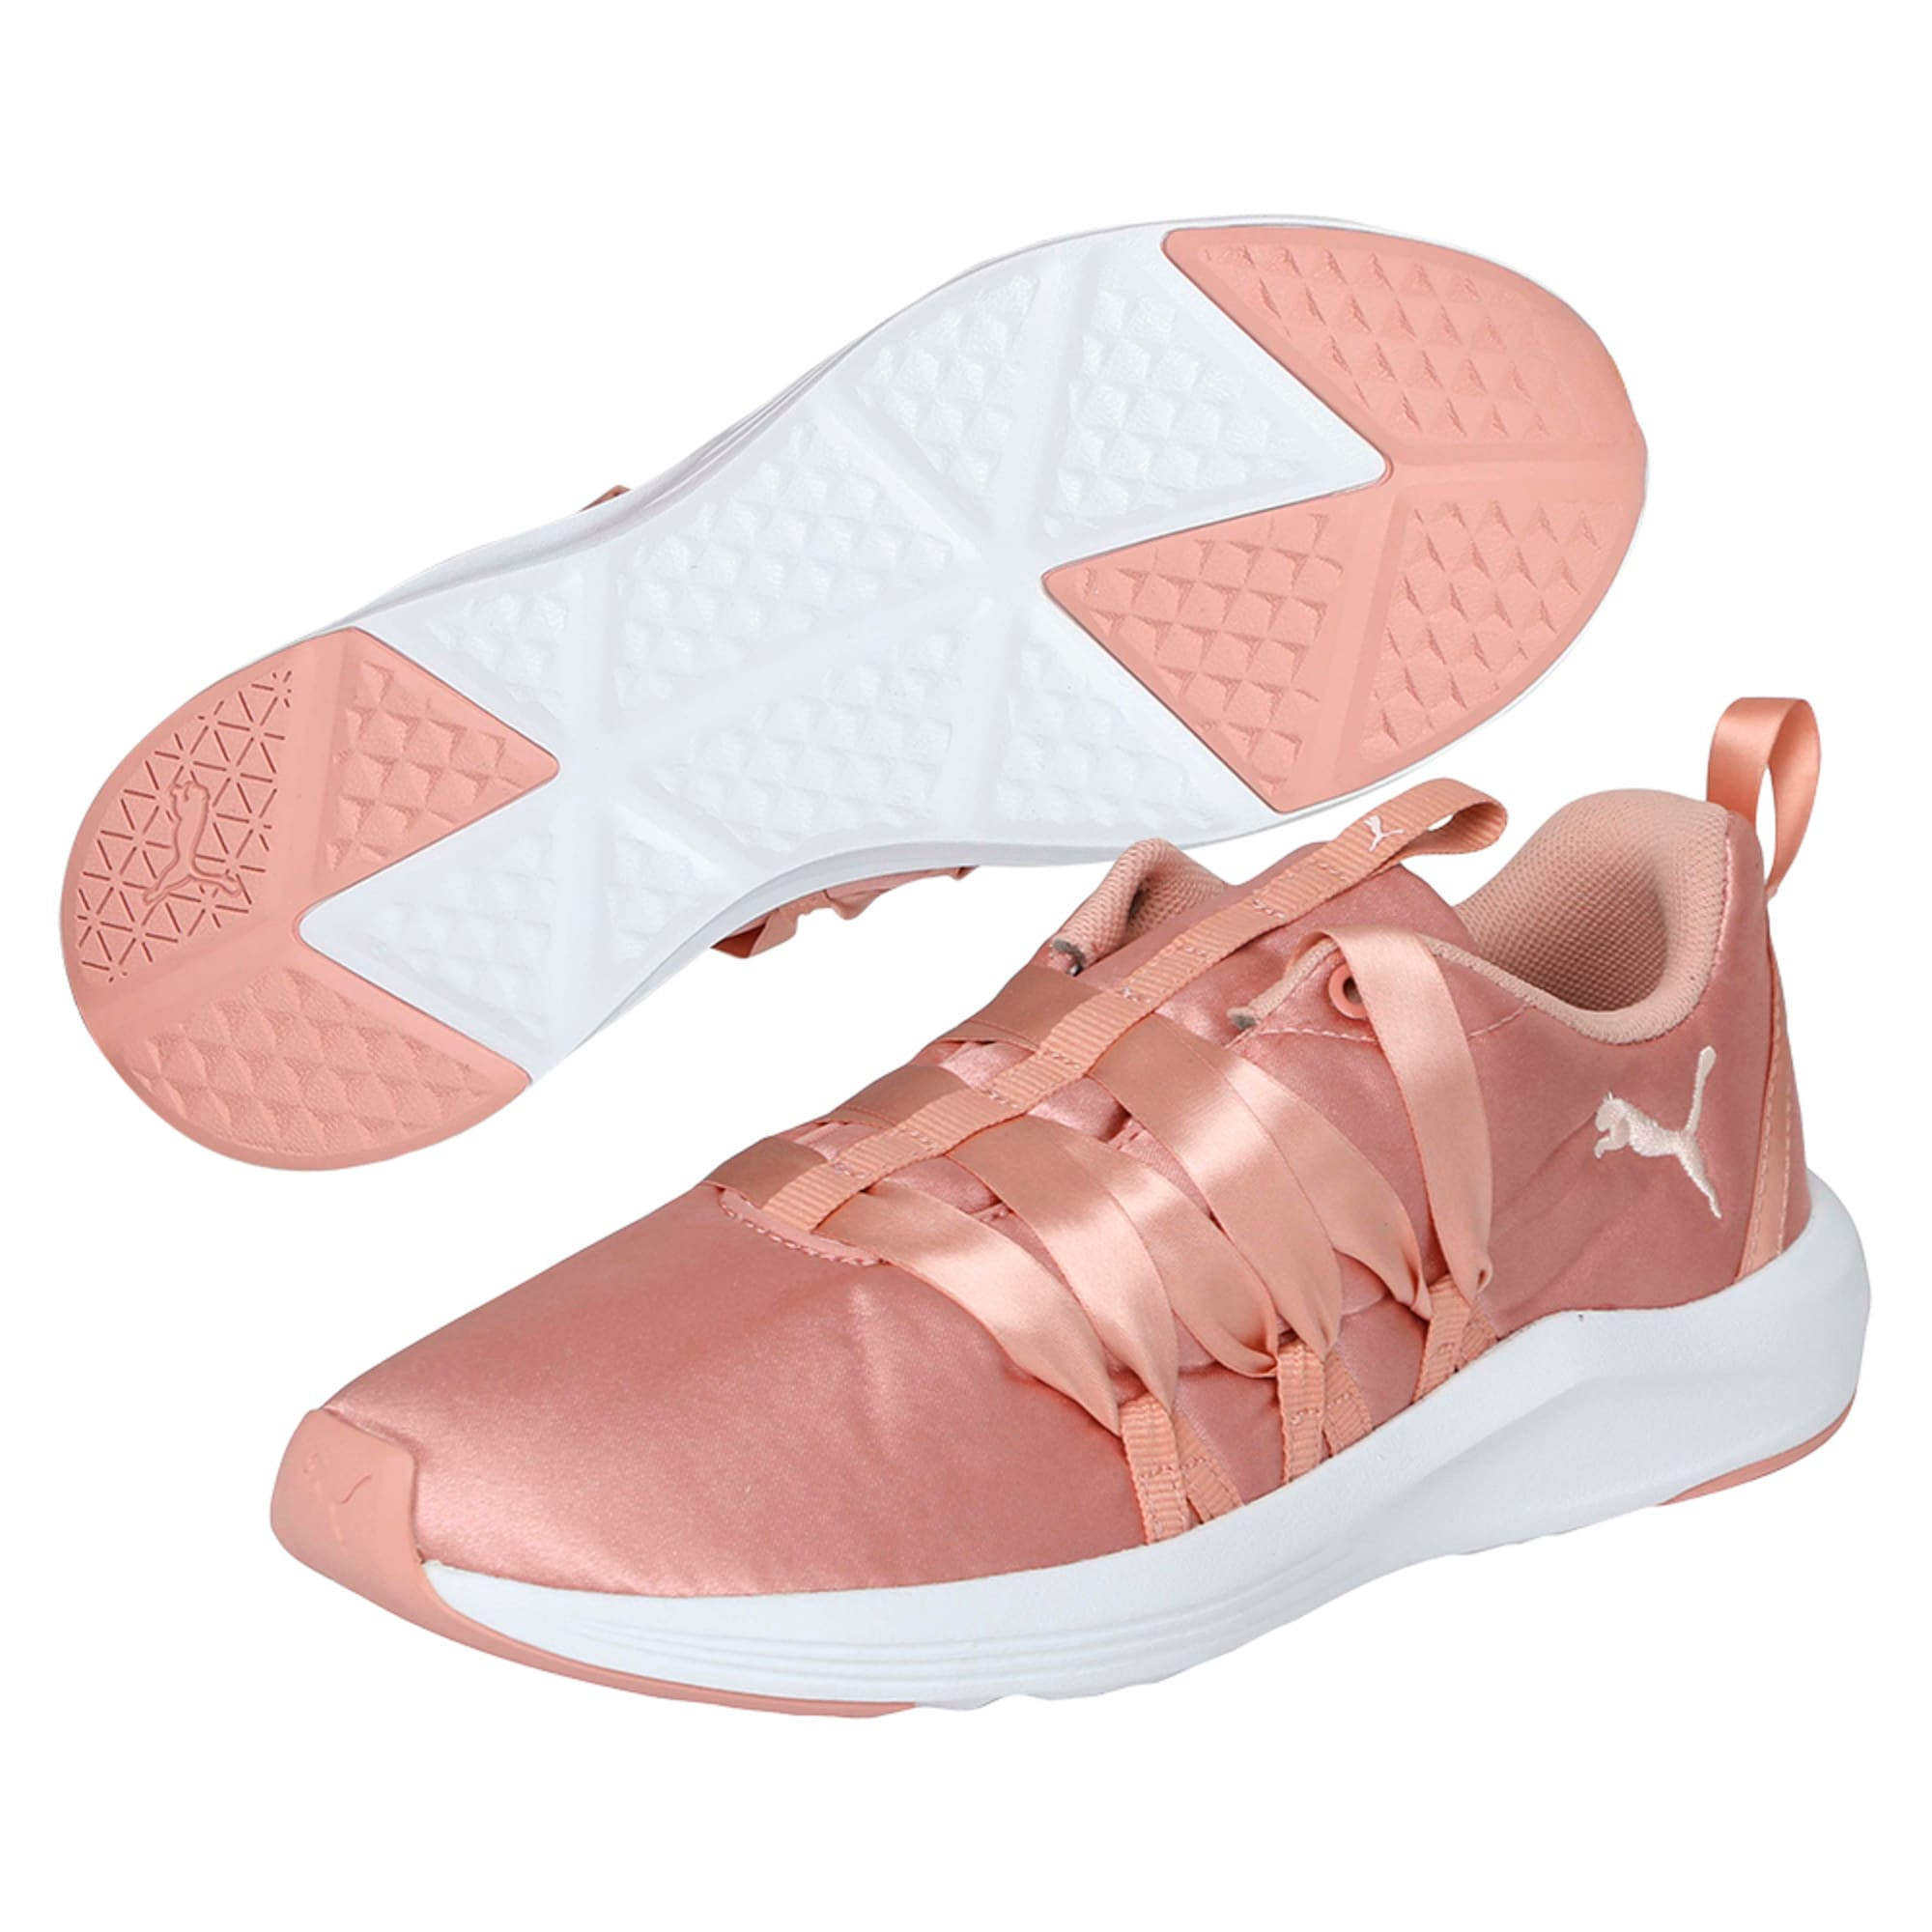 Thumbnail 6 of Prowl Alt Satin Women's Training Shoes, Peach Beige-Puma White, medium-IND